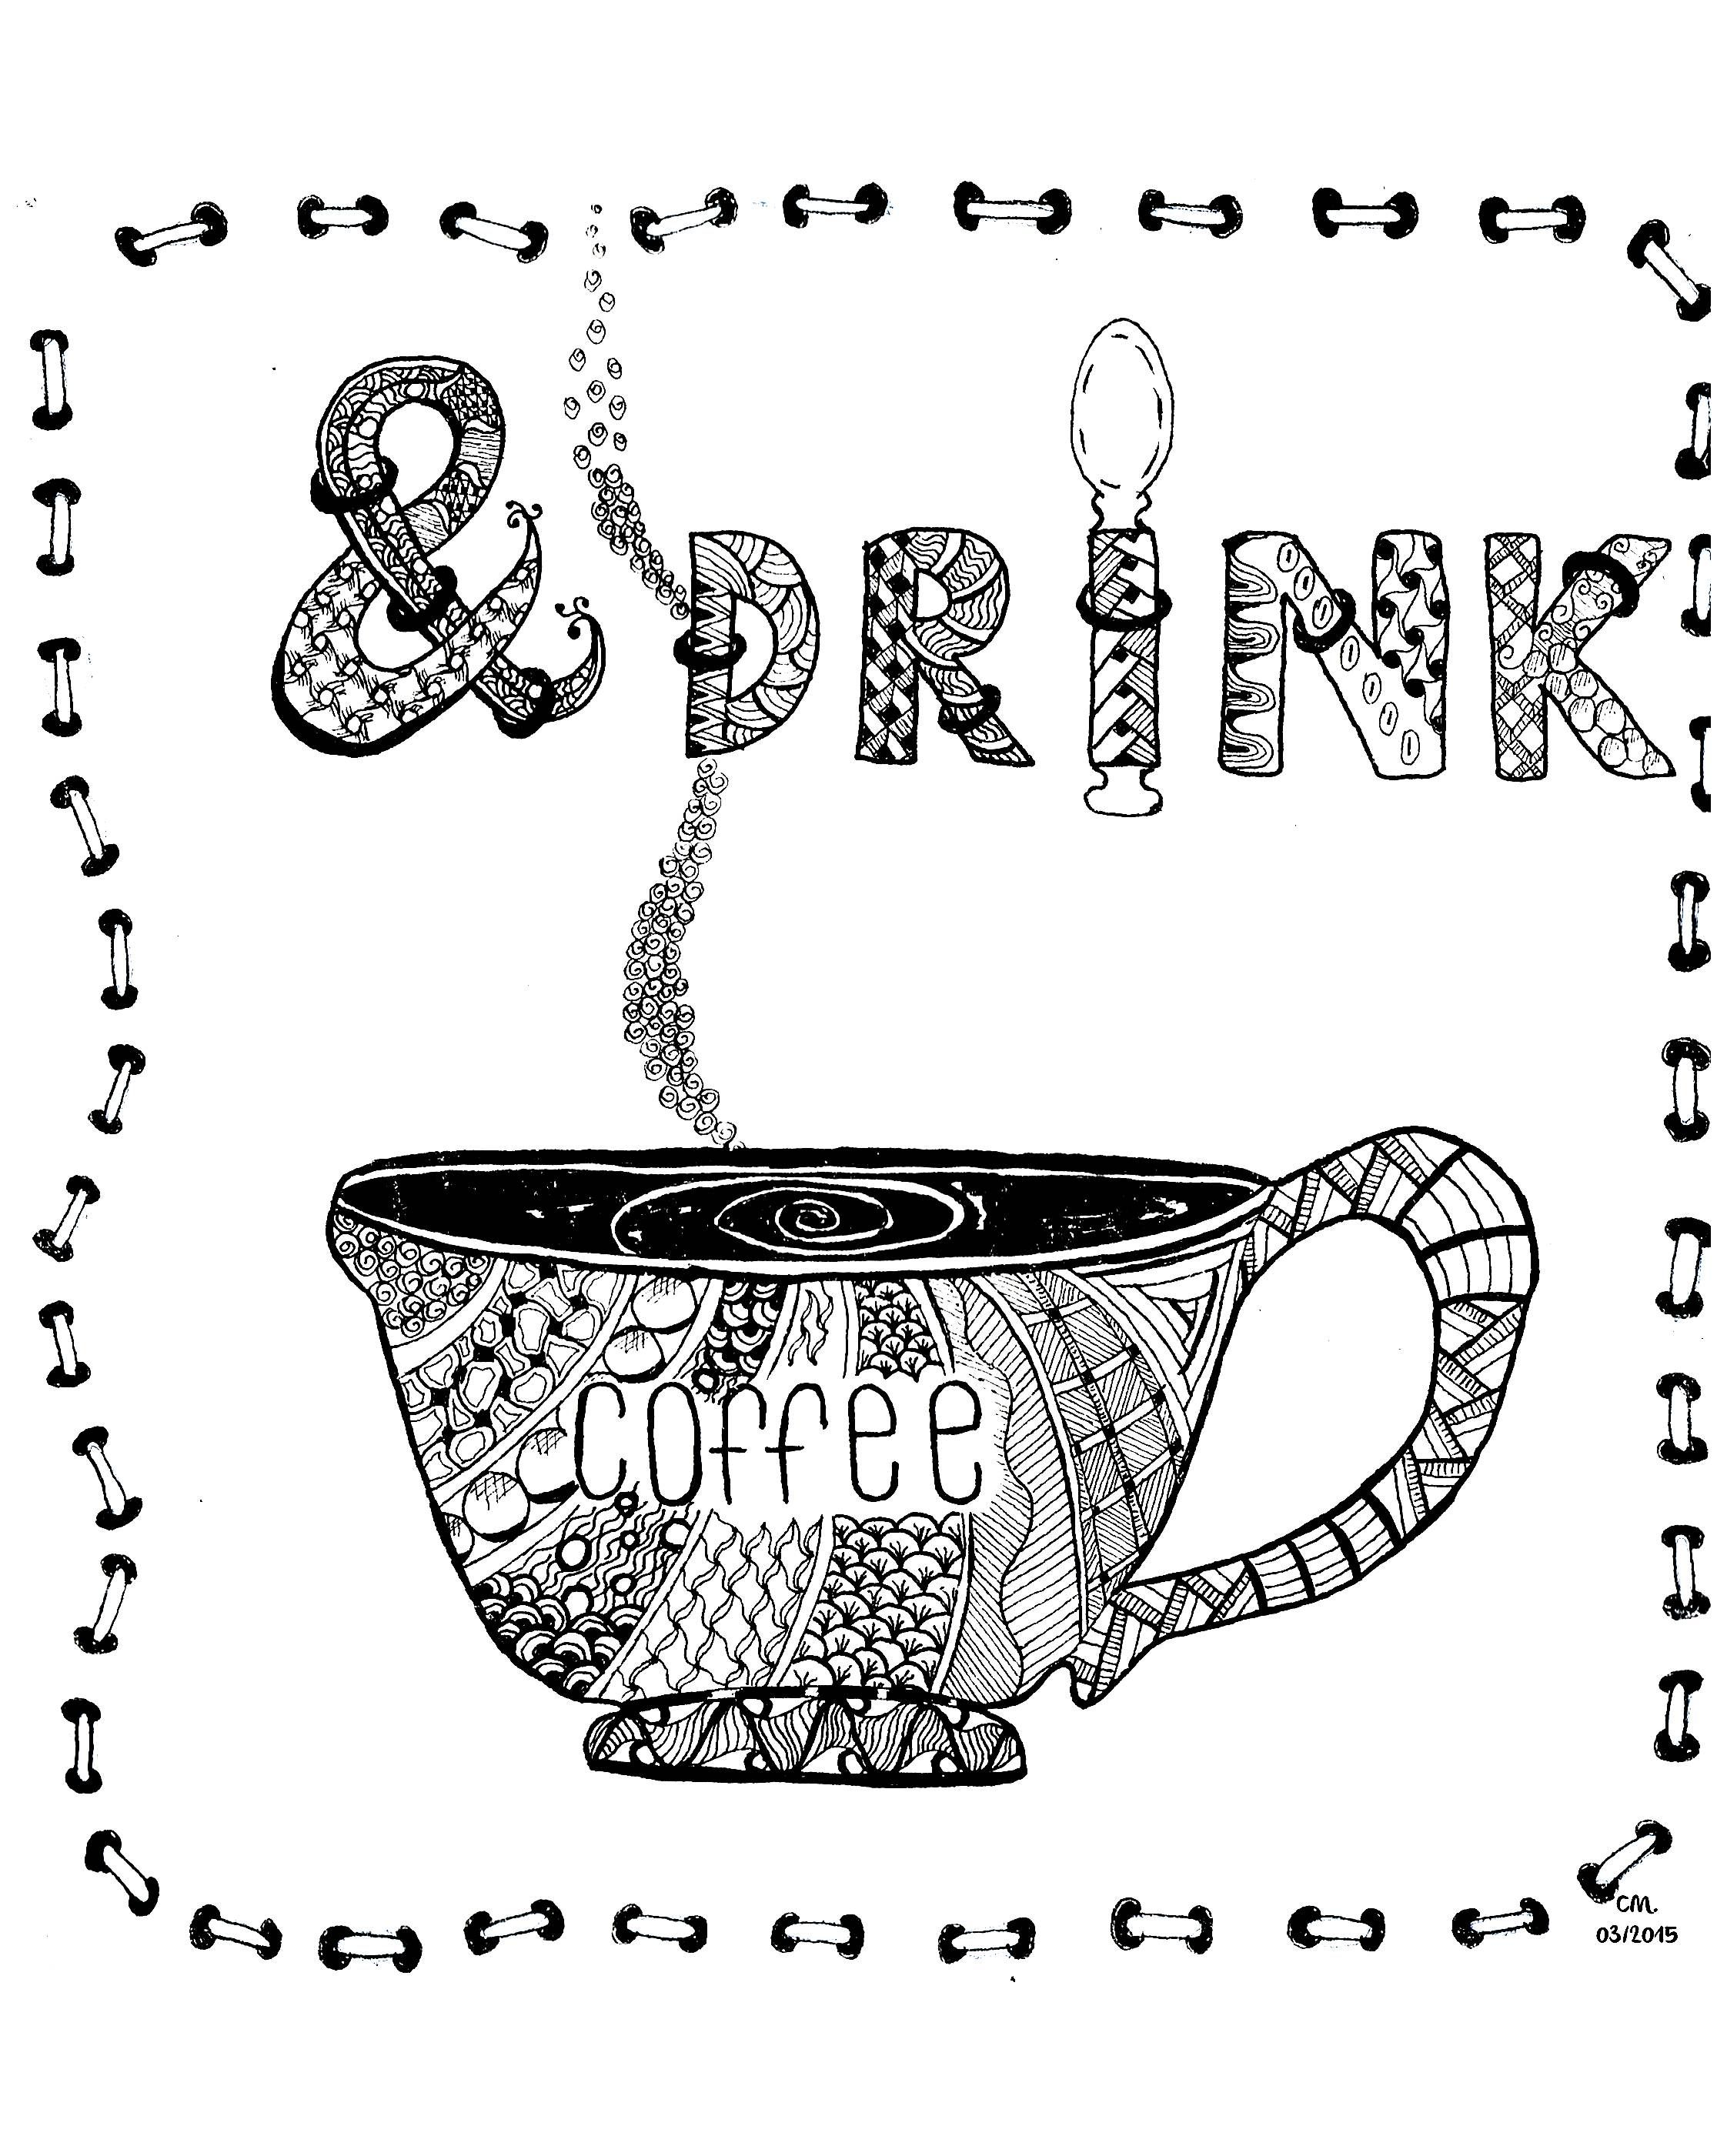 Do anti stress colouring books work -  Drink Coffee Exclusive Zentangle Coloring Page See The Original Work From The Gallery Zentangle Artist Cathy M Zen And Anti Stress